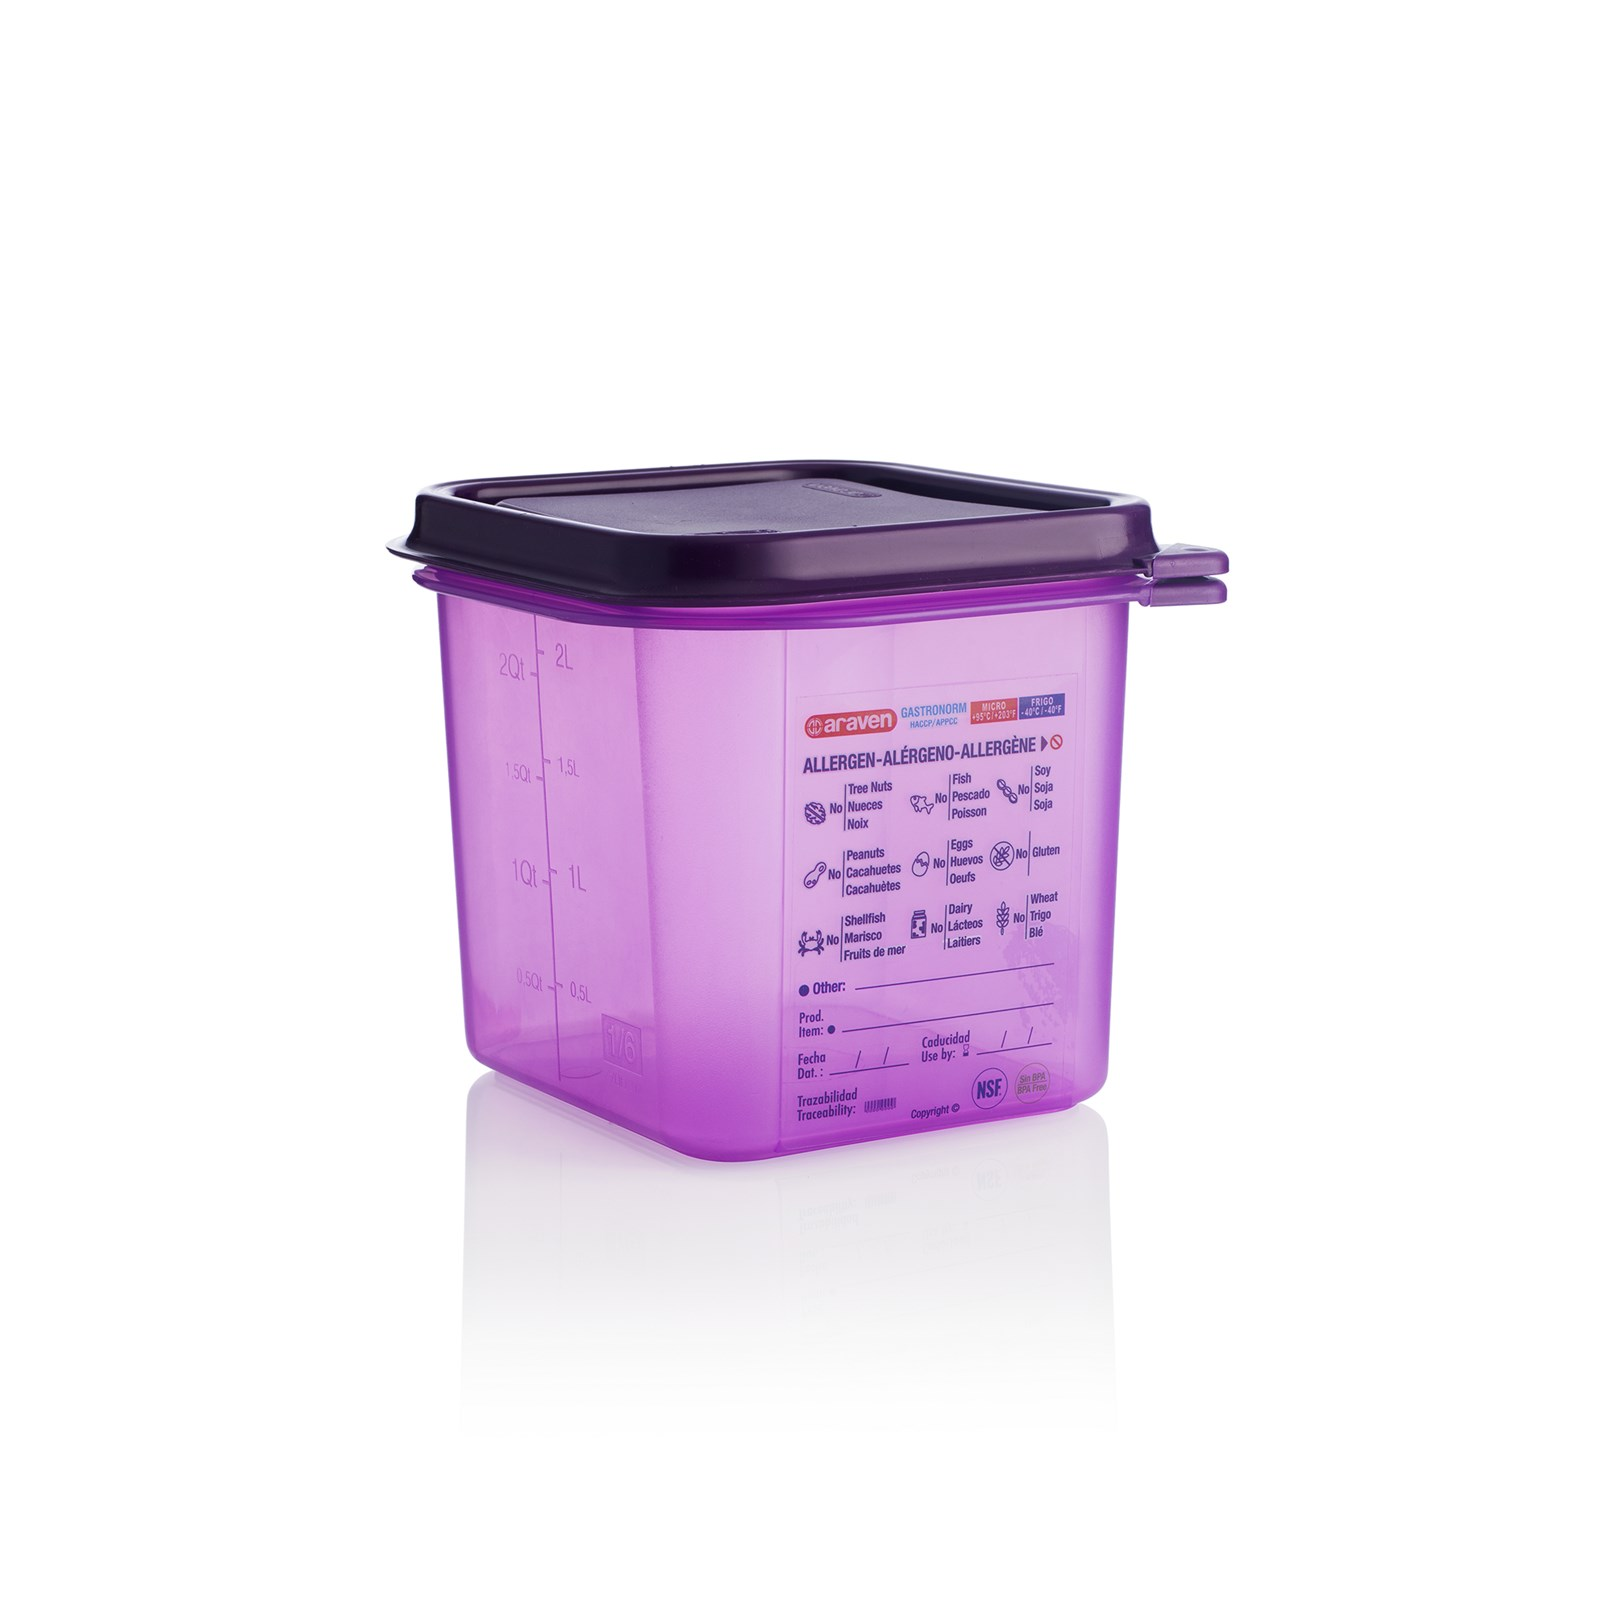 Allergen 1/6 Gastronorm Container with Lid 2.6L